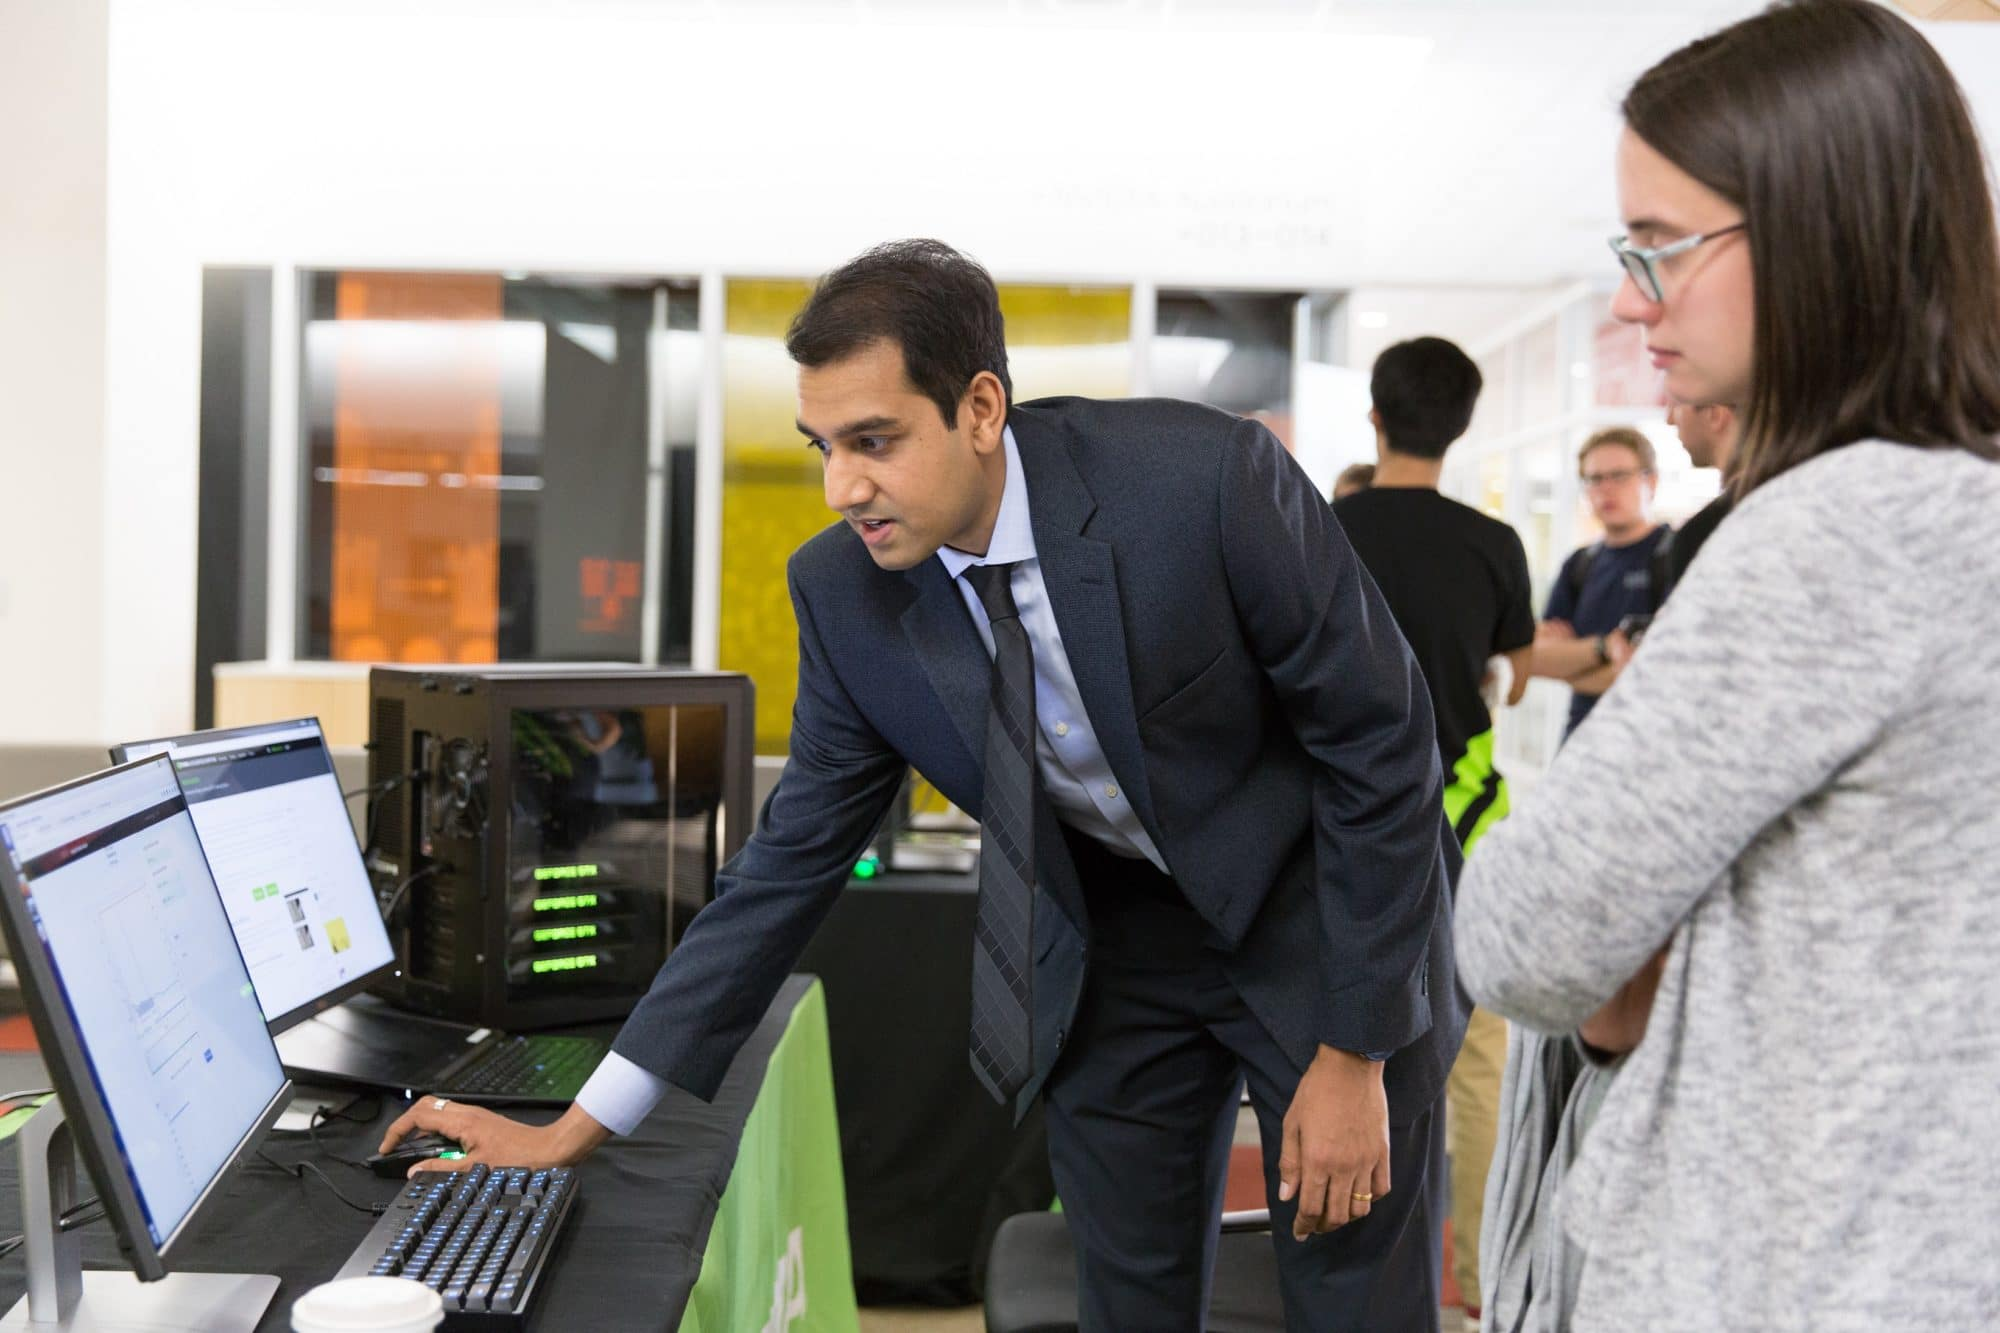 NVIDIA's Shashank Prasanna demonstrates our Deep Learning GPU Training System (DIGITS) at a university recruiting event.